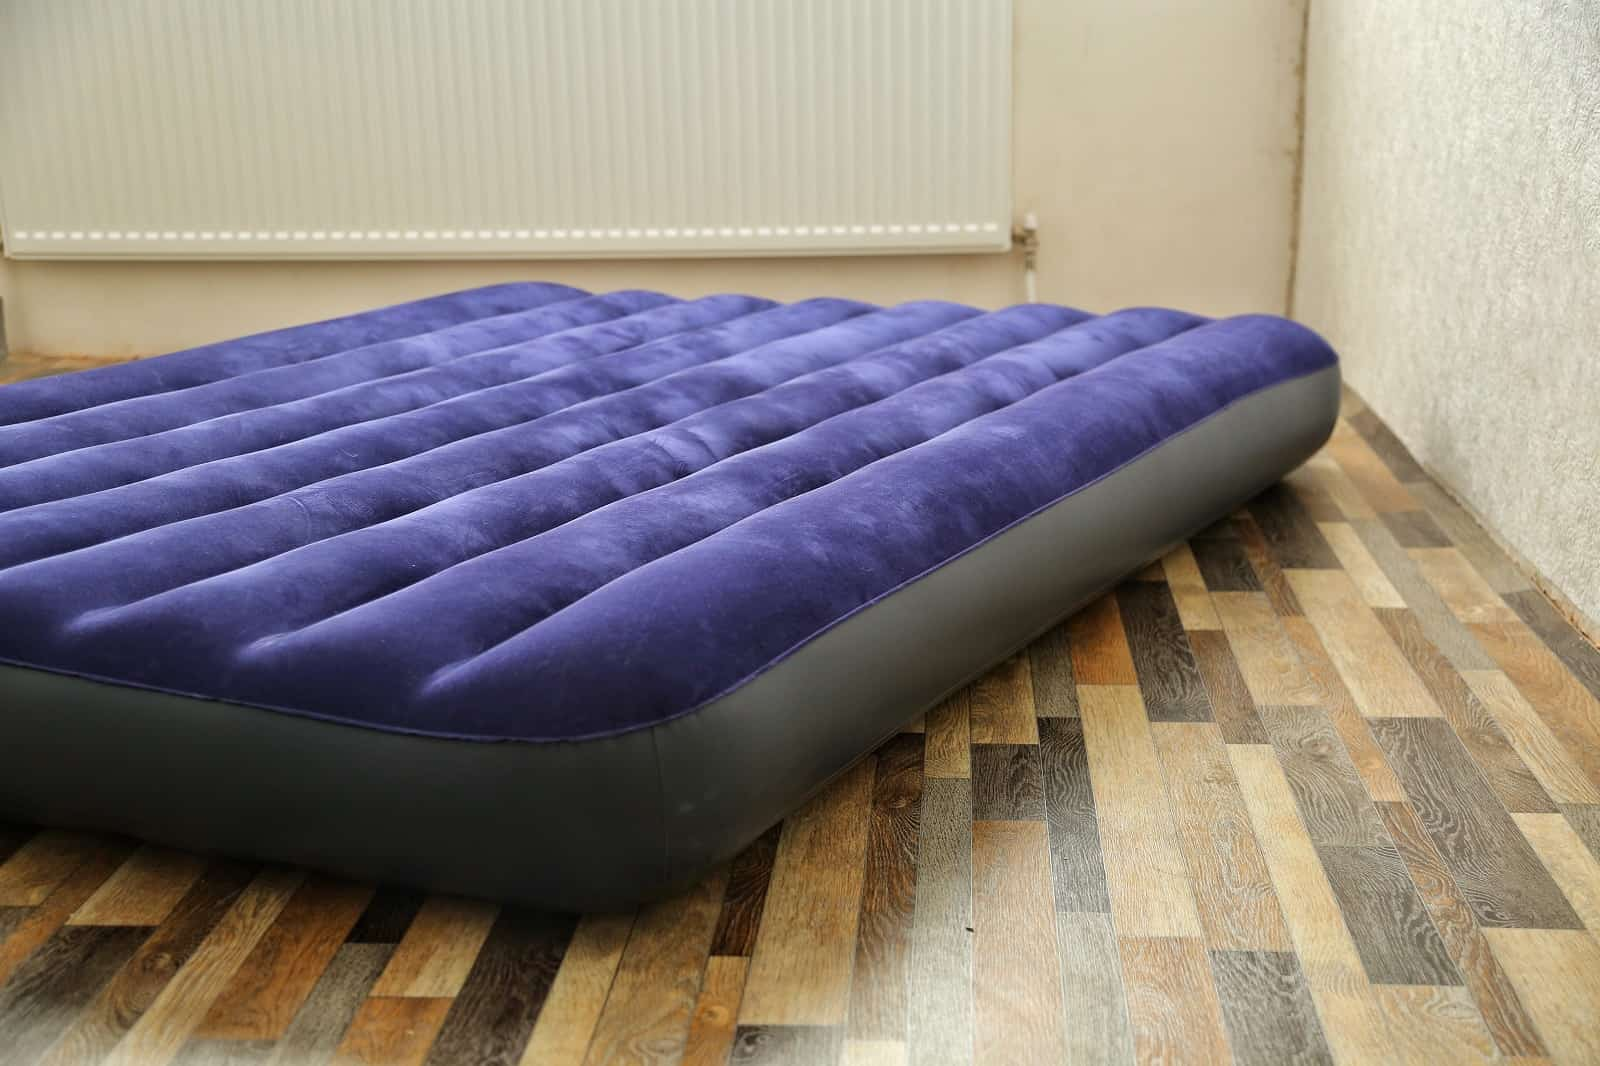 Air Mattress Dimensions And The Best